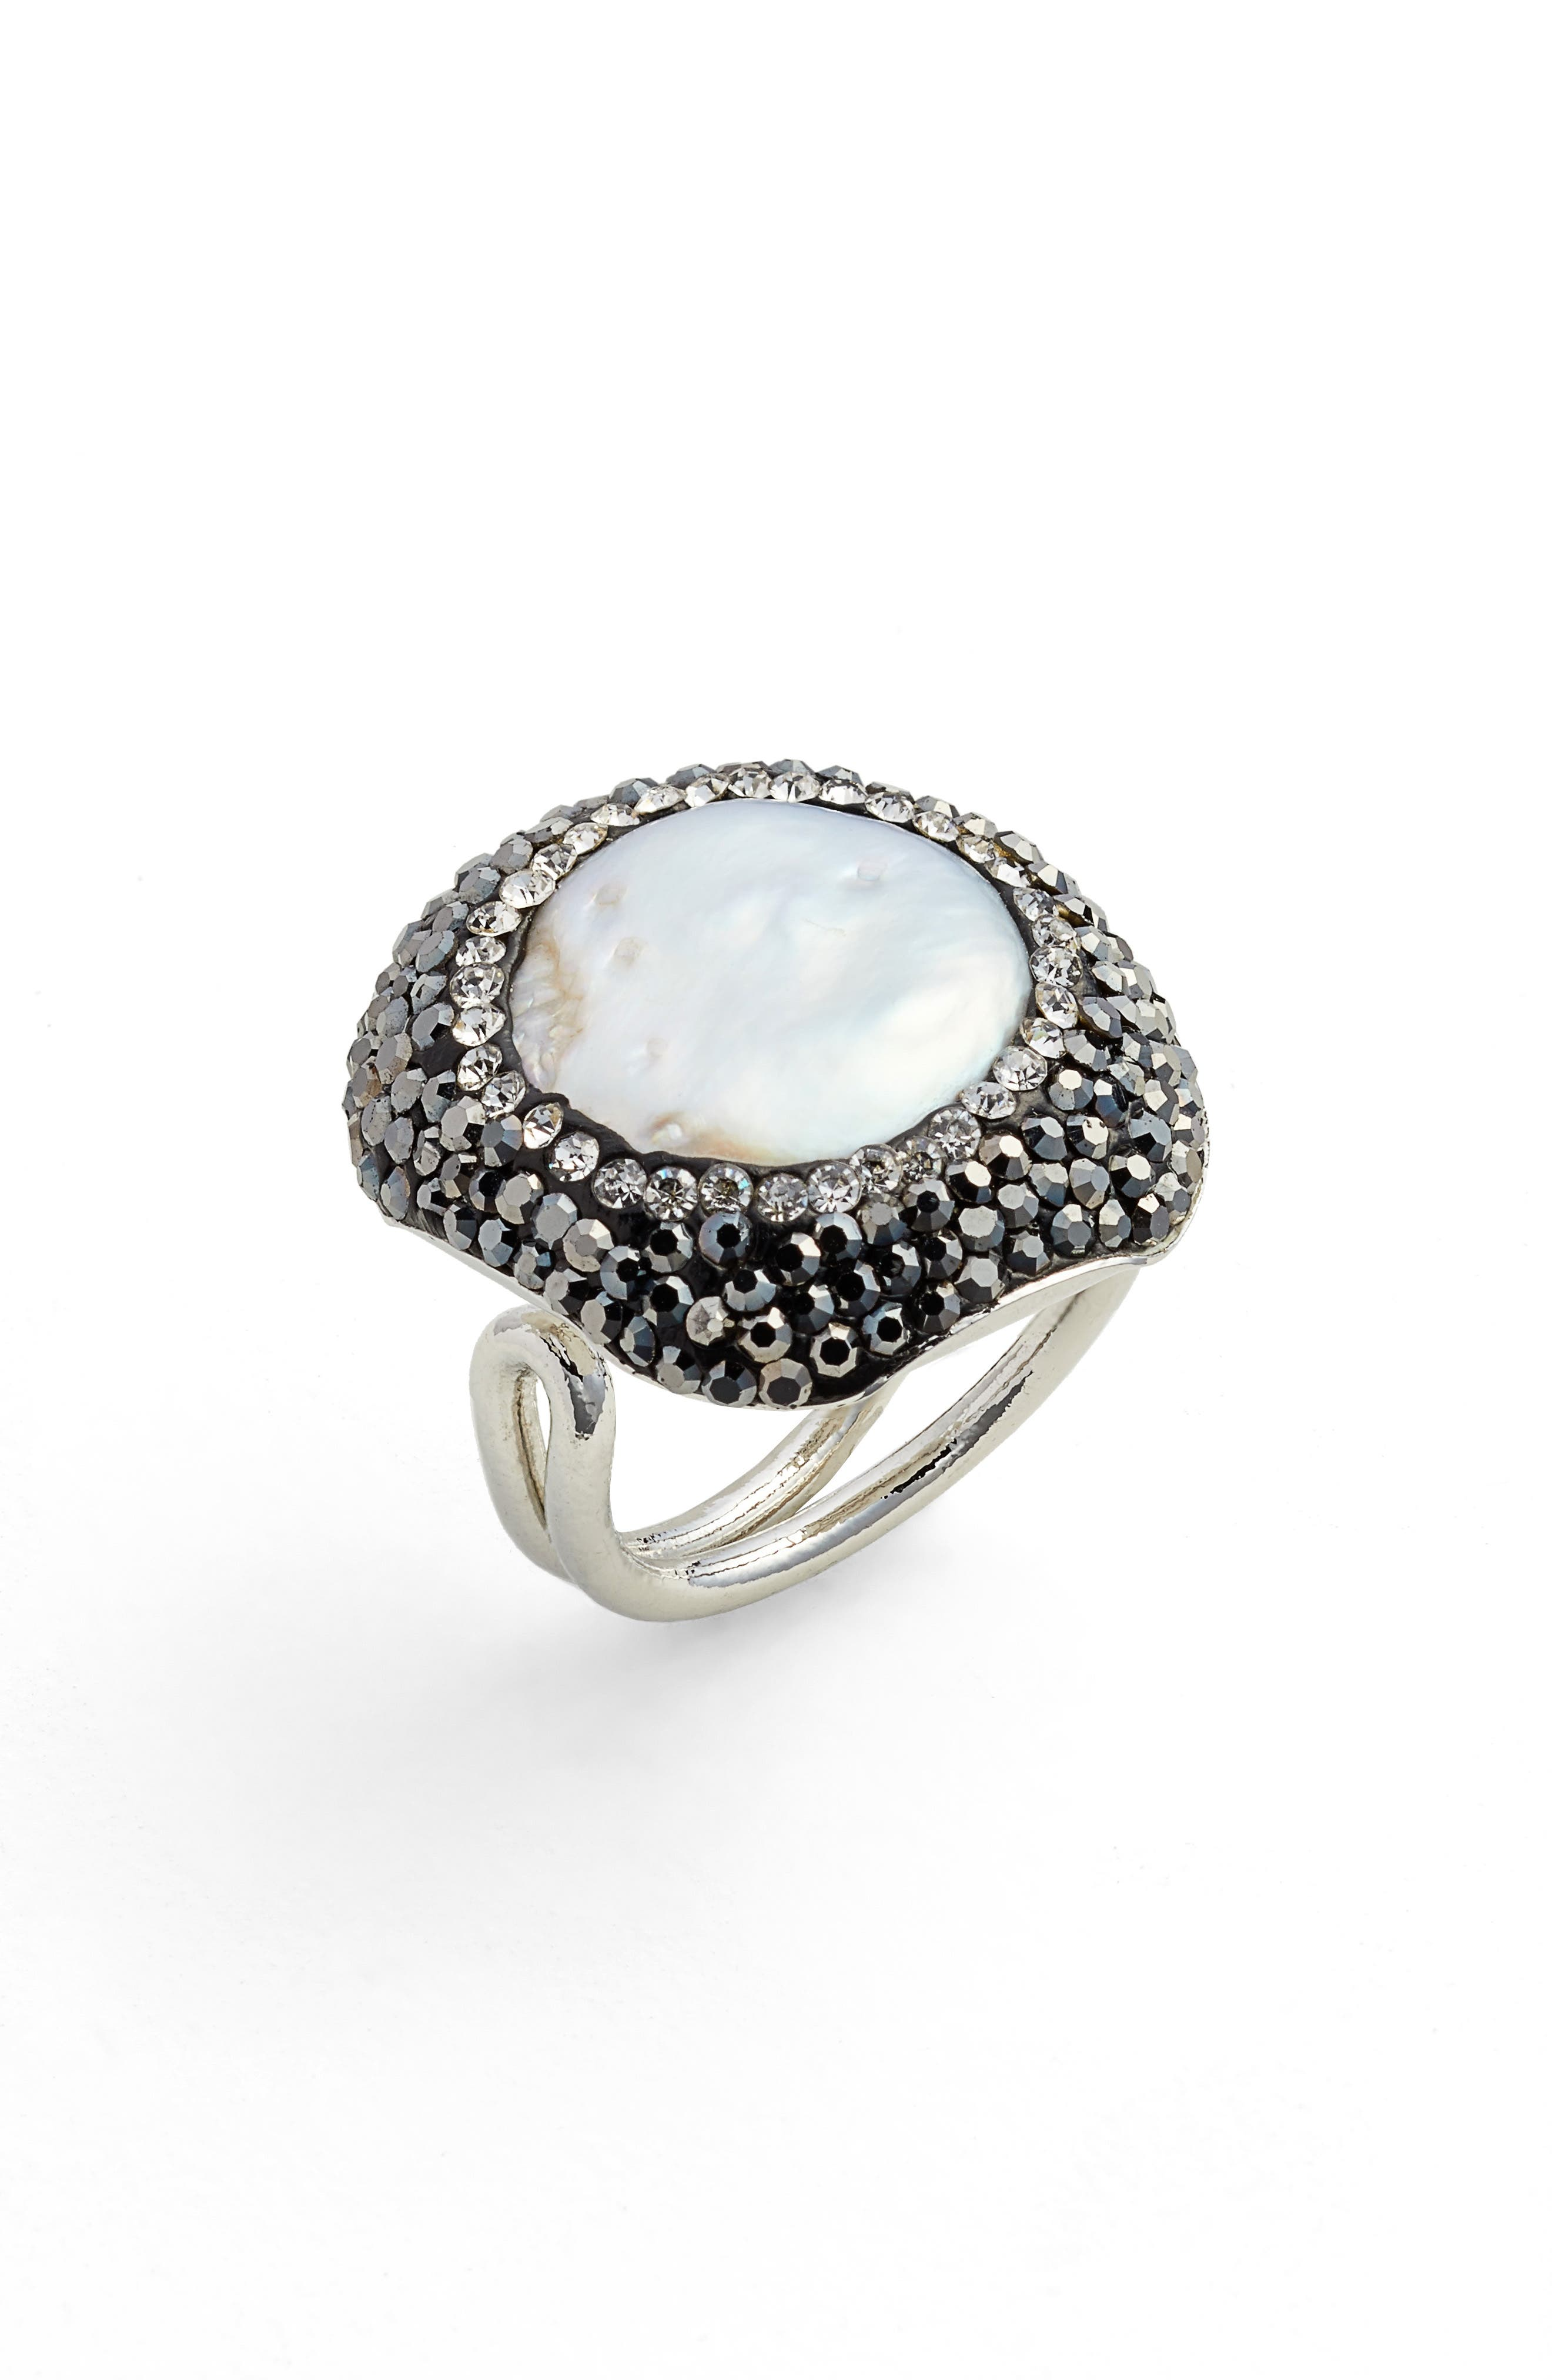 Elise M. Clarinet Mother-of-Pearl & Crystal Adjustable Ring